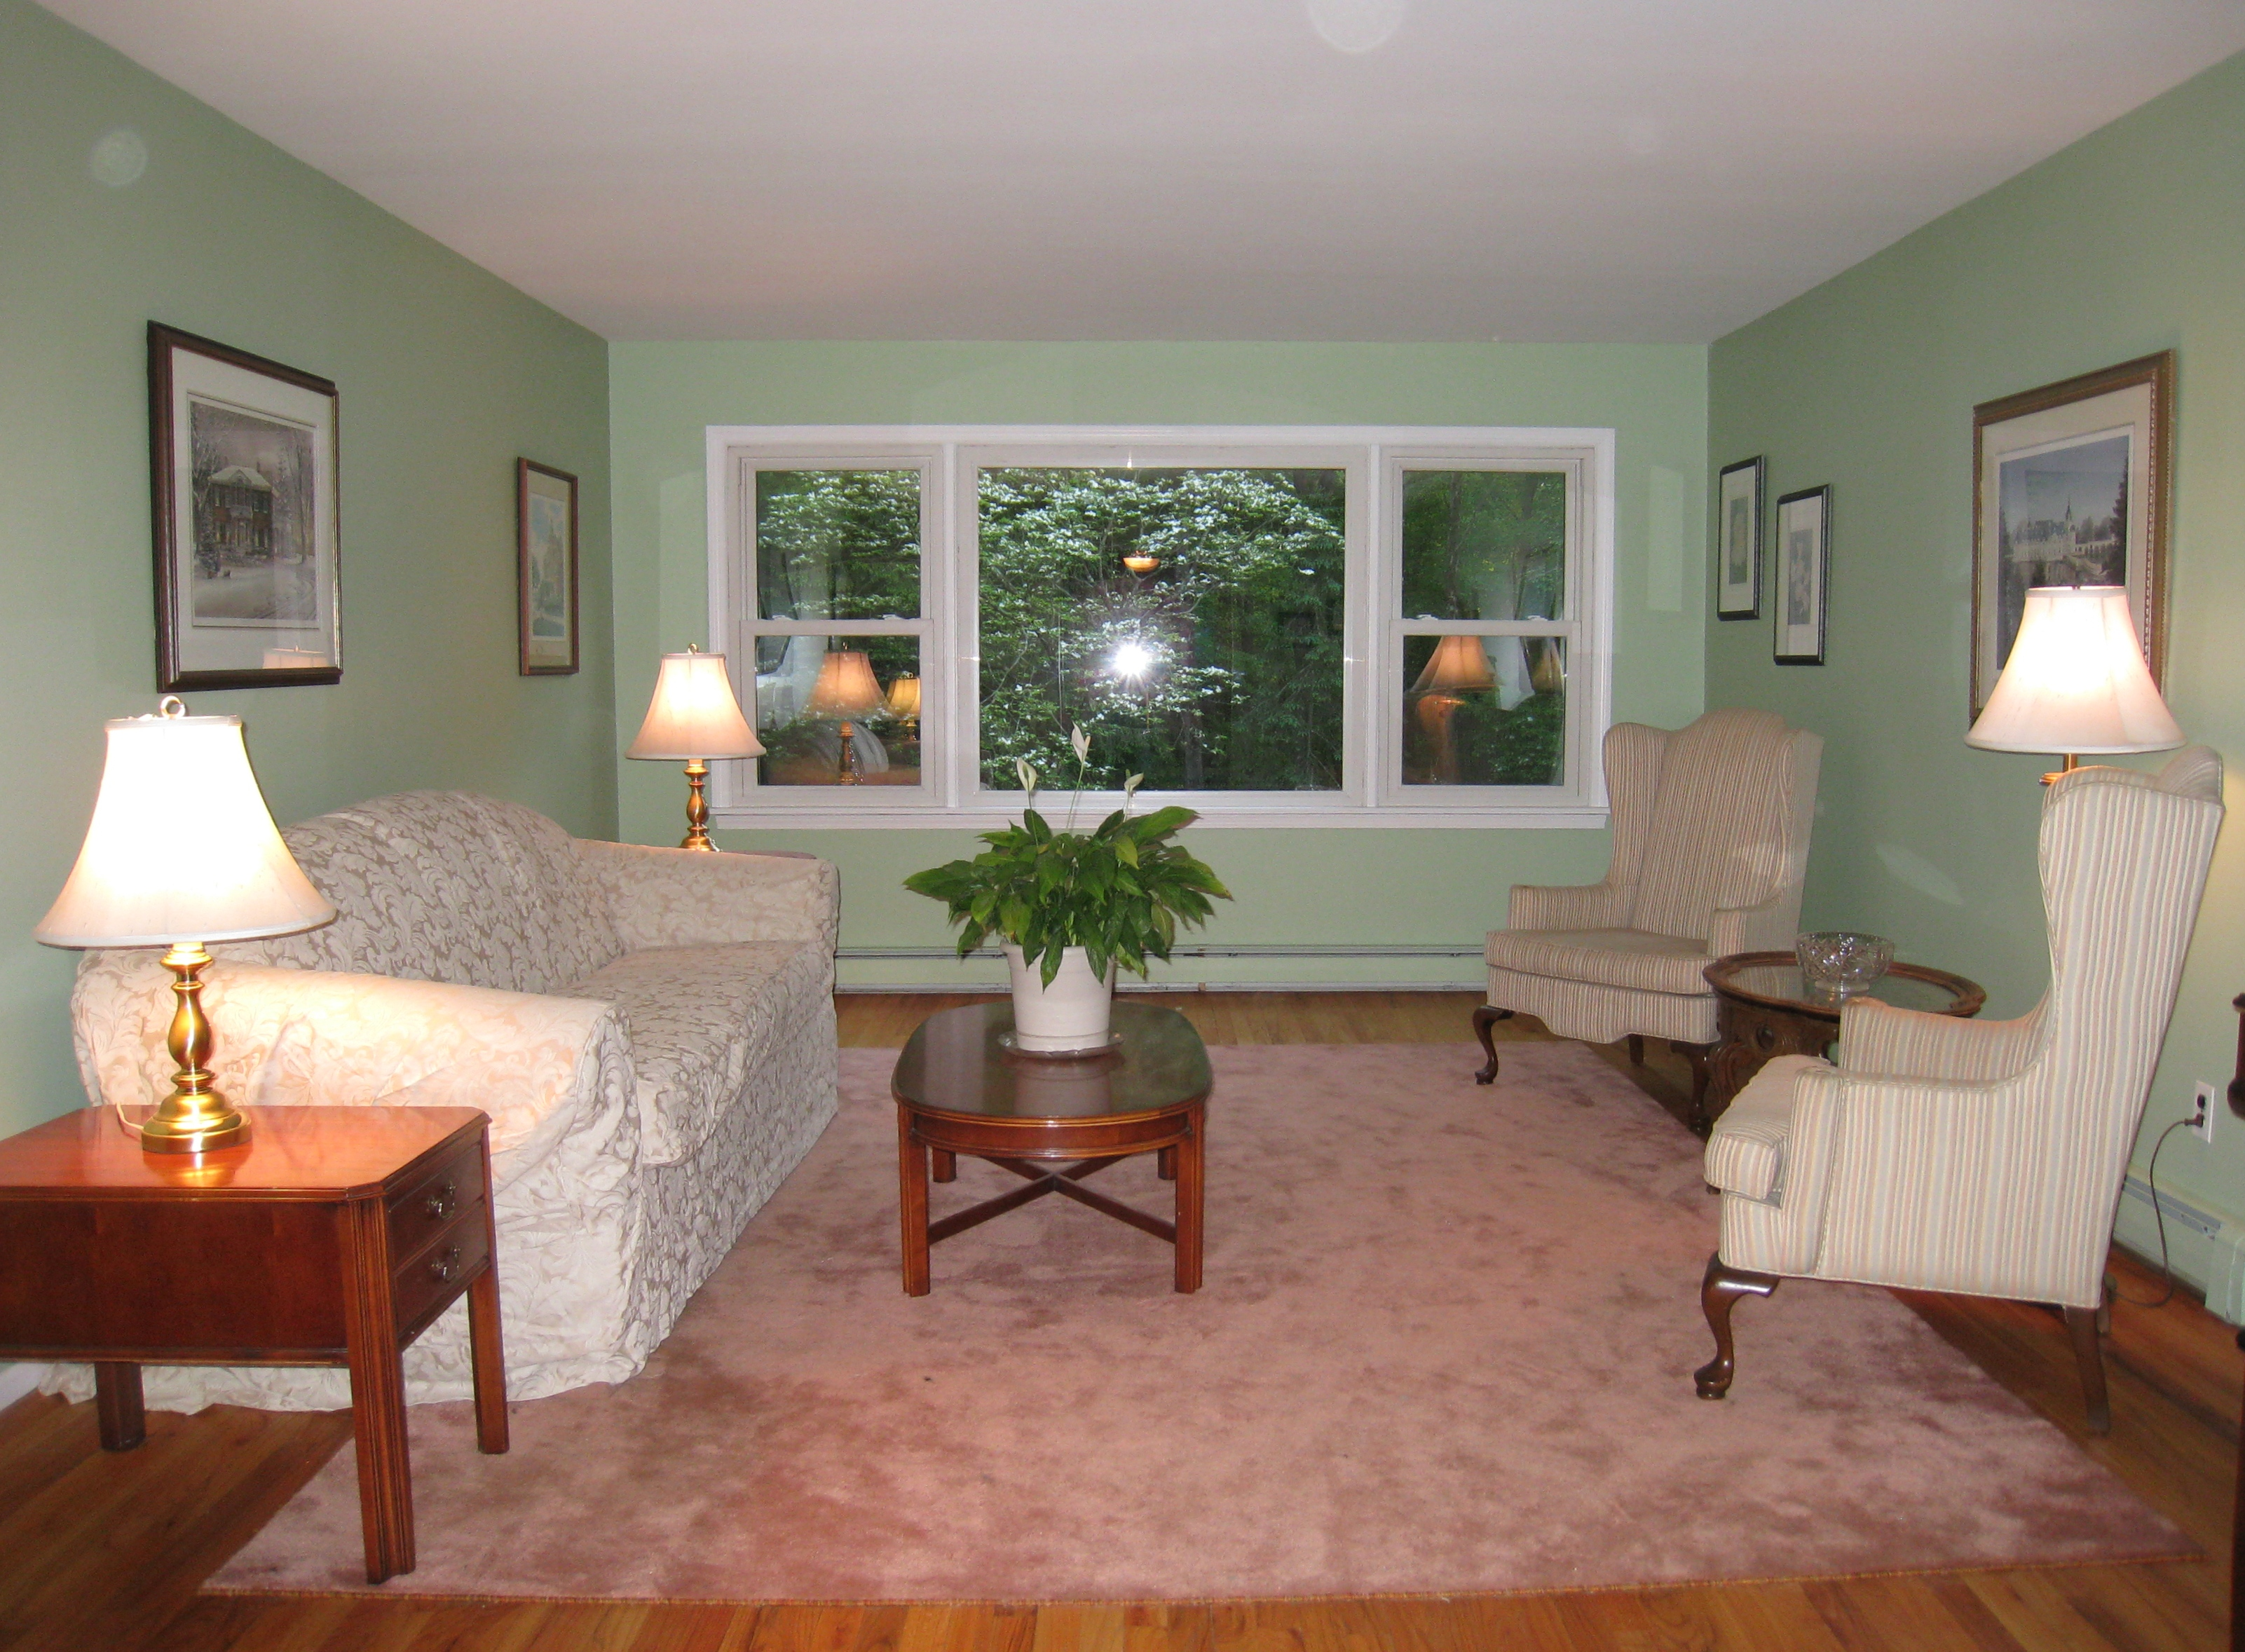 home staging compels buyers to focus on features atwell staged home